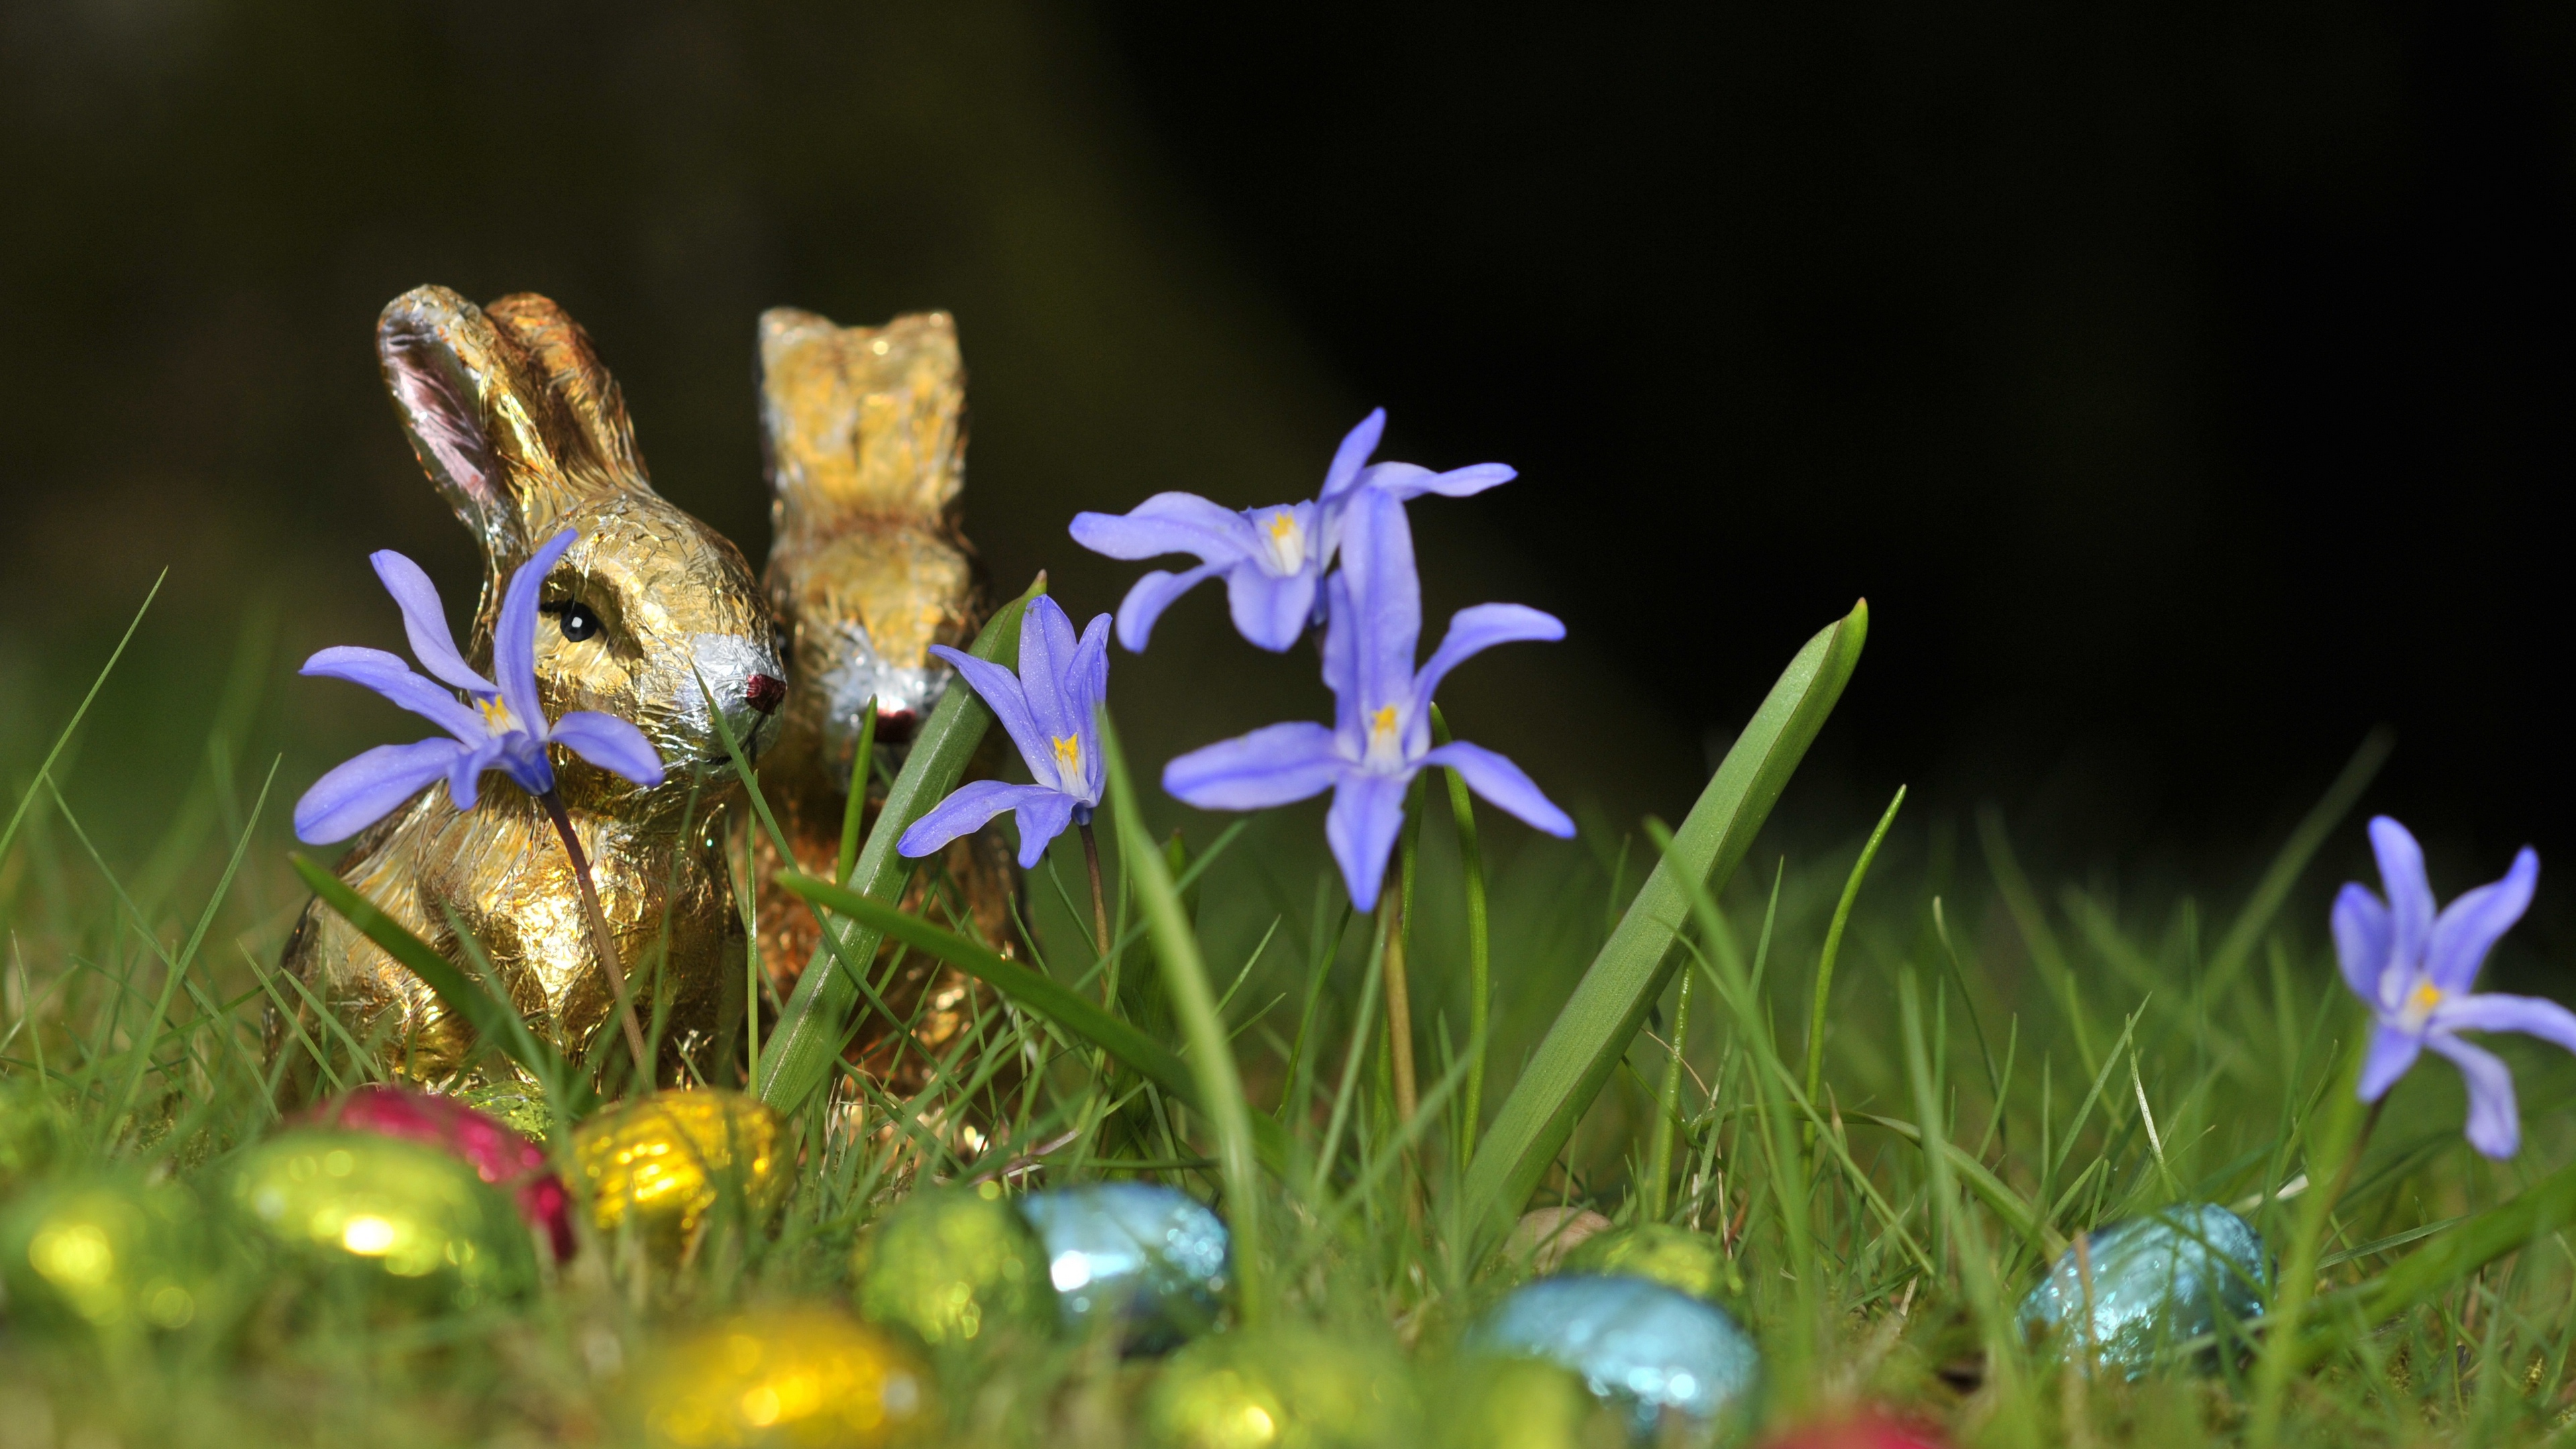 chocolate rabbits easter eggs flowers grass 4k 1538344802 - chocolate rabbits, easter, eggs, flowers, grass 4k - Eggs, Easter, chocolate rabbits